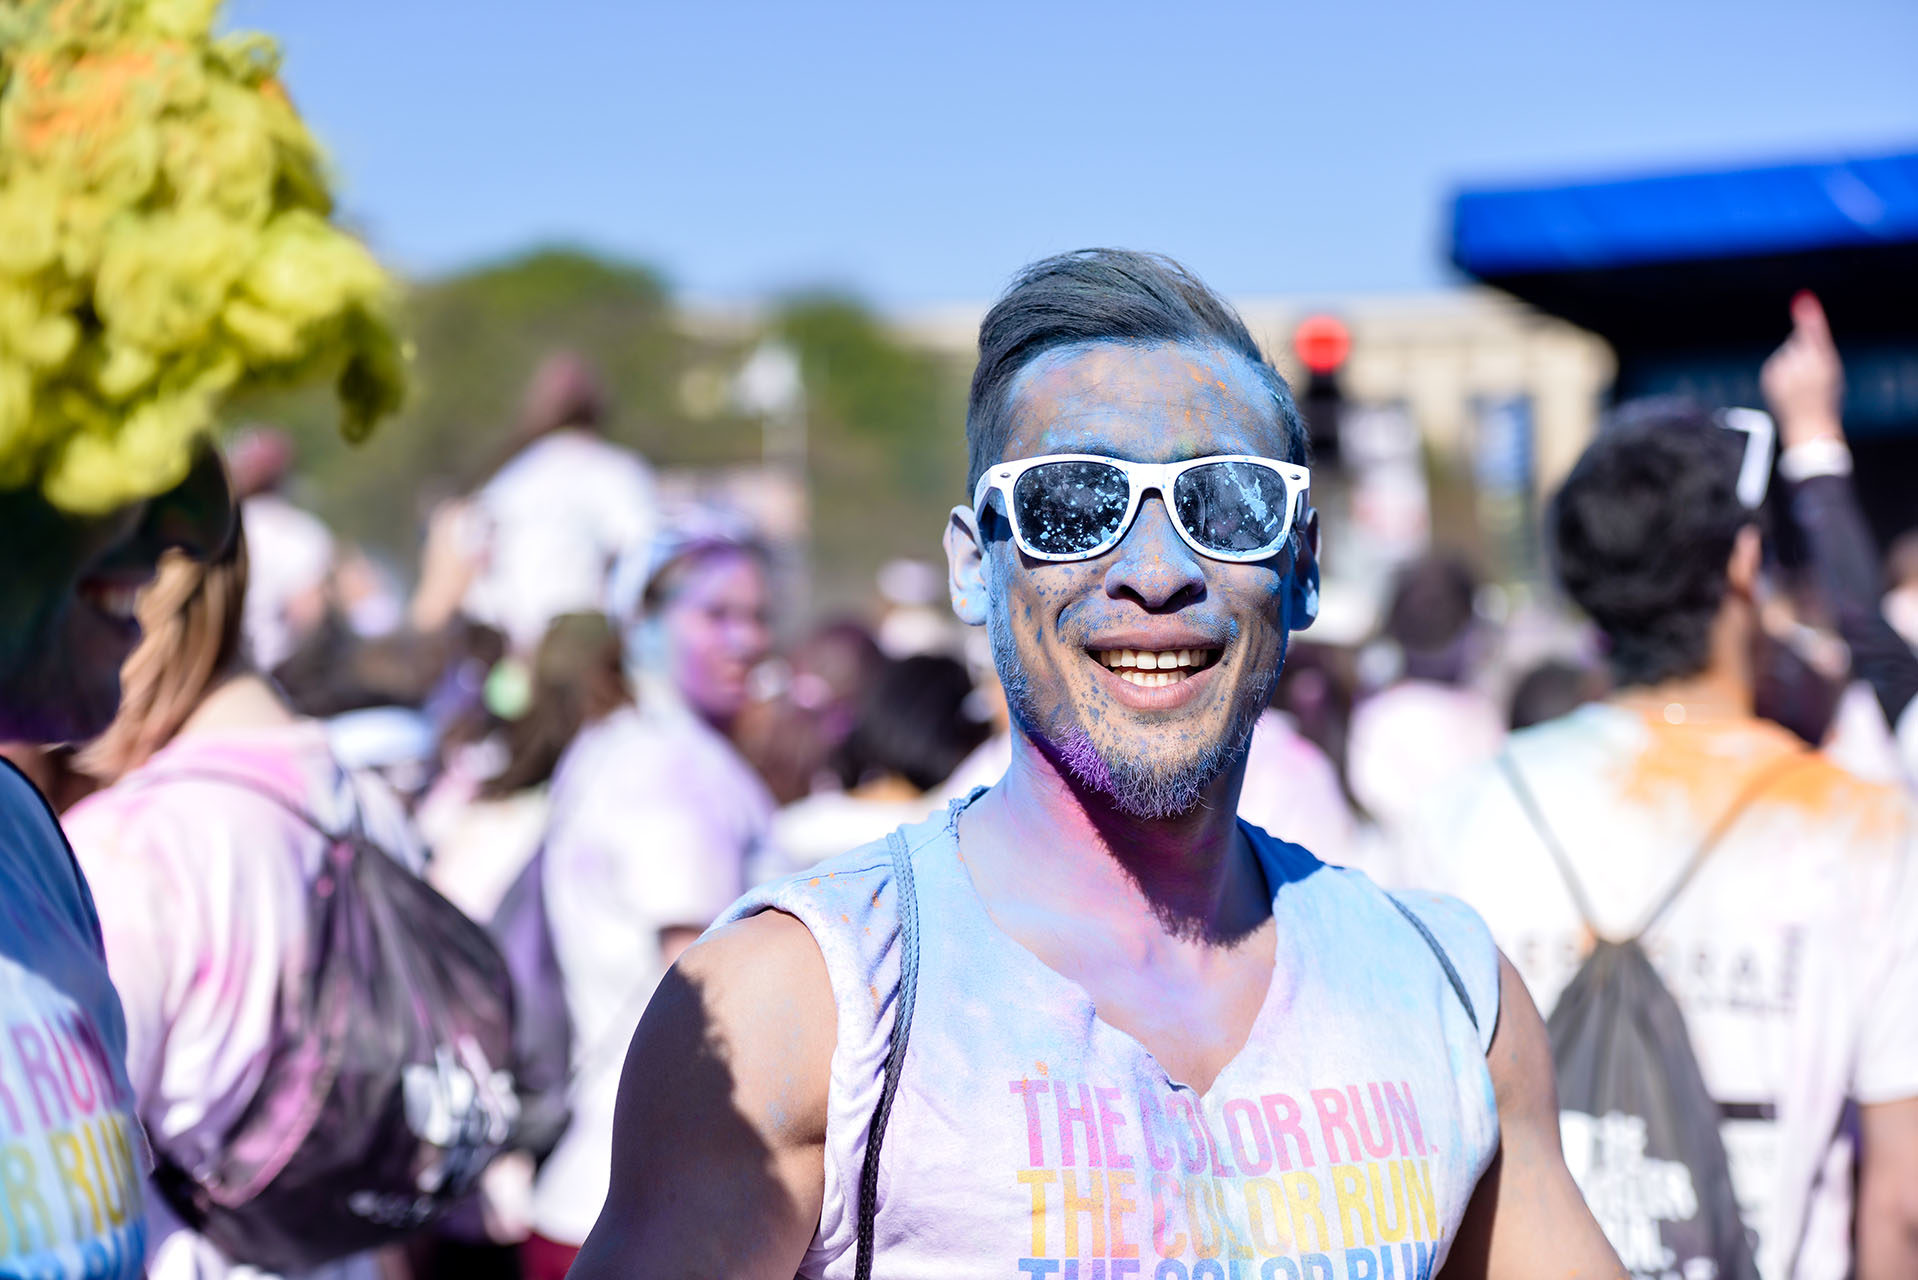 photographe-evenementiel-ile-de-france-maya-angelsen-mairie-de-paris-color-run-2015